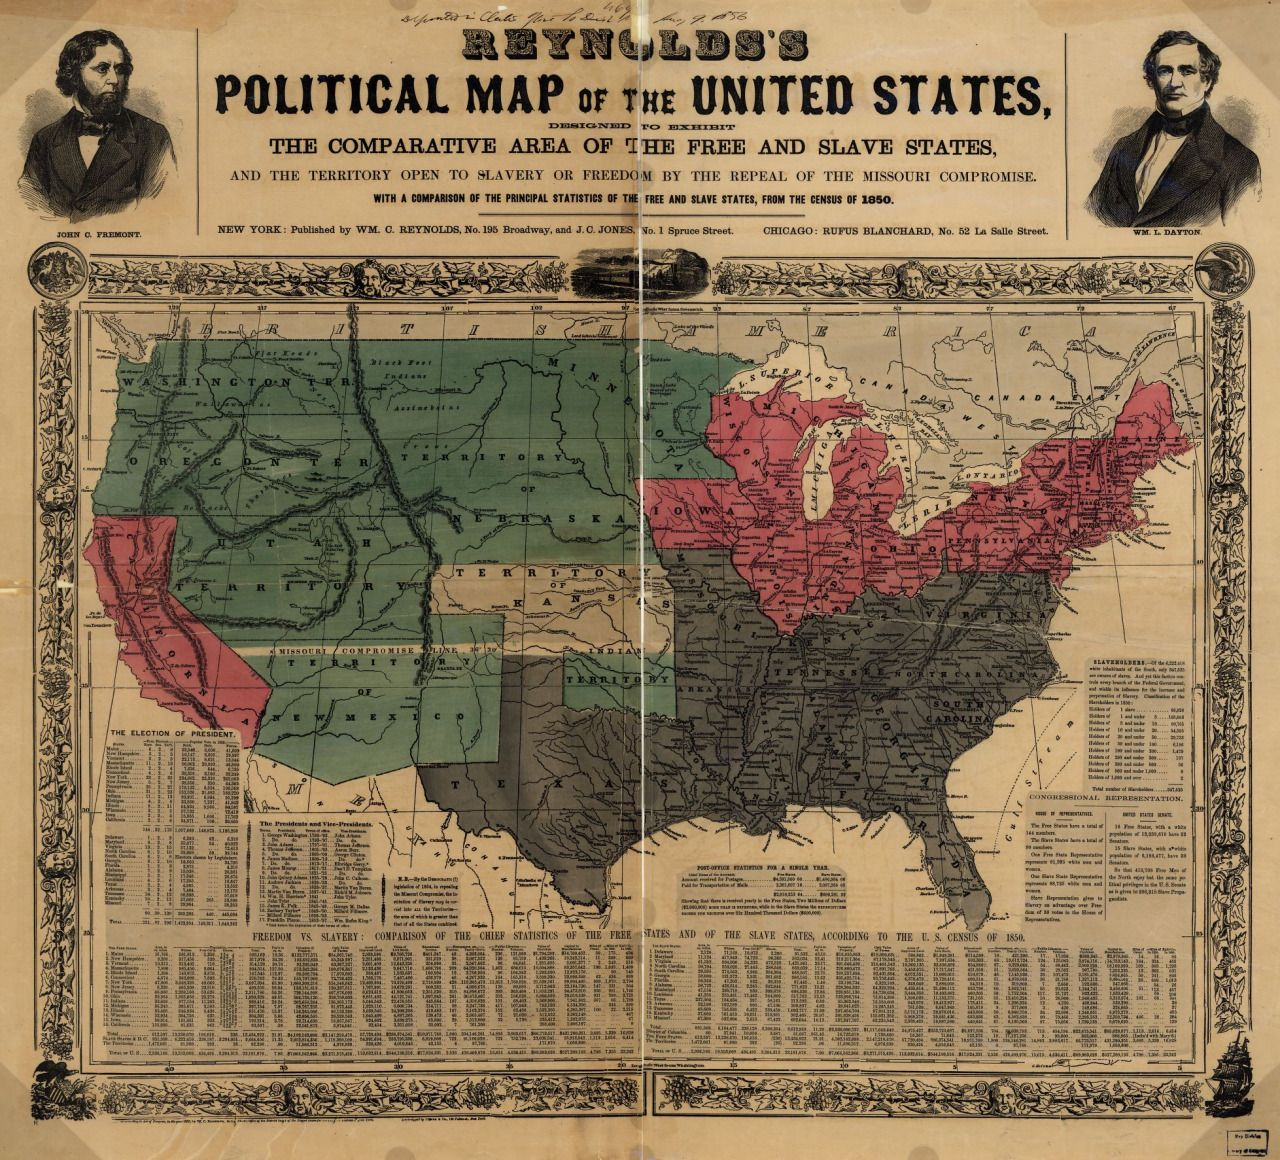 Political Map Of The United States More Old Maps Of The US - Old map of the us